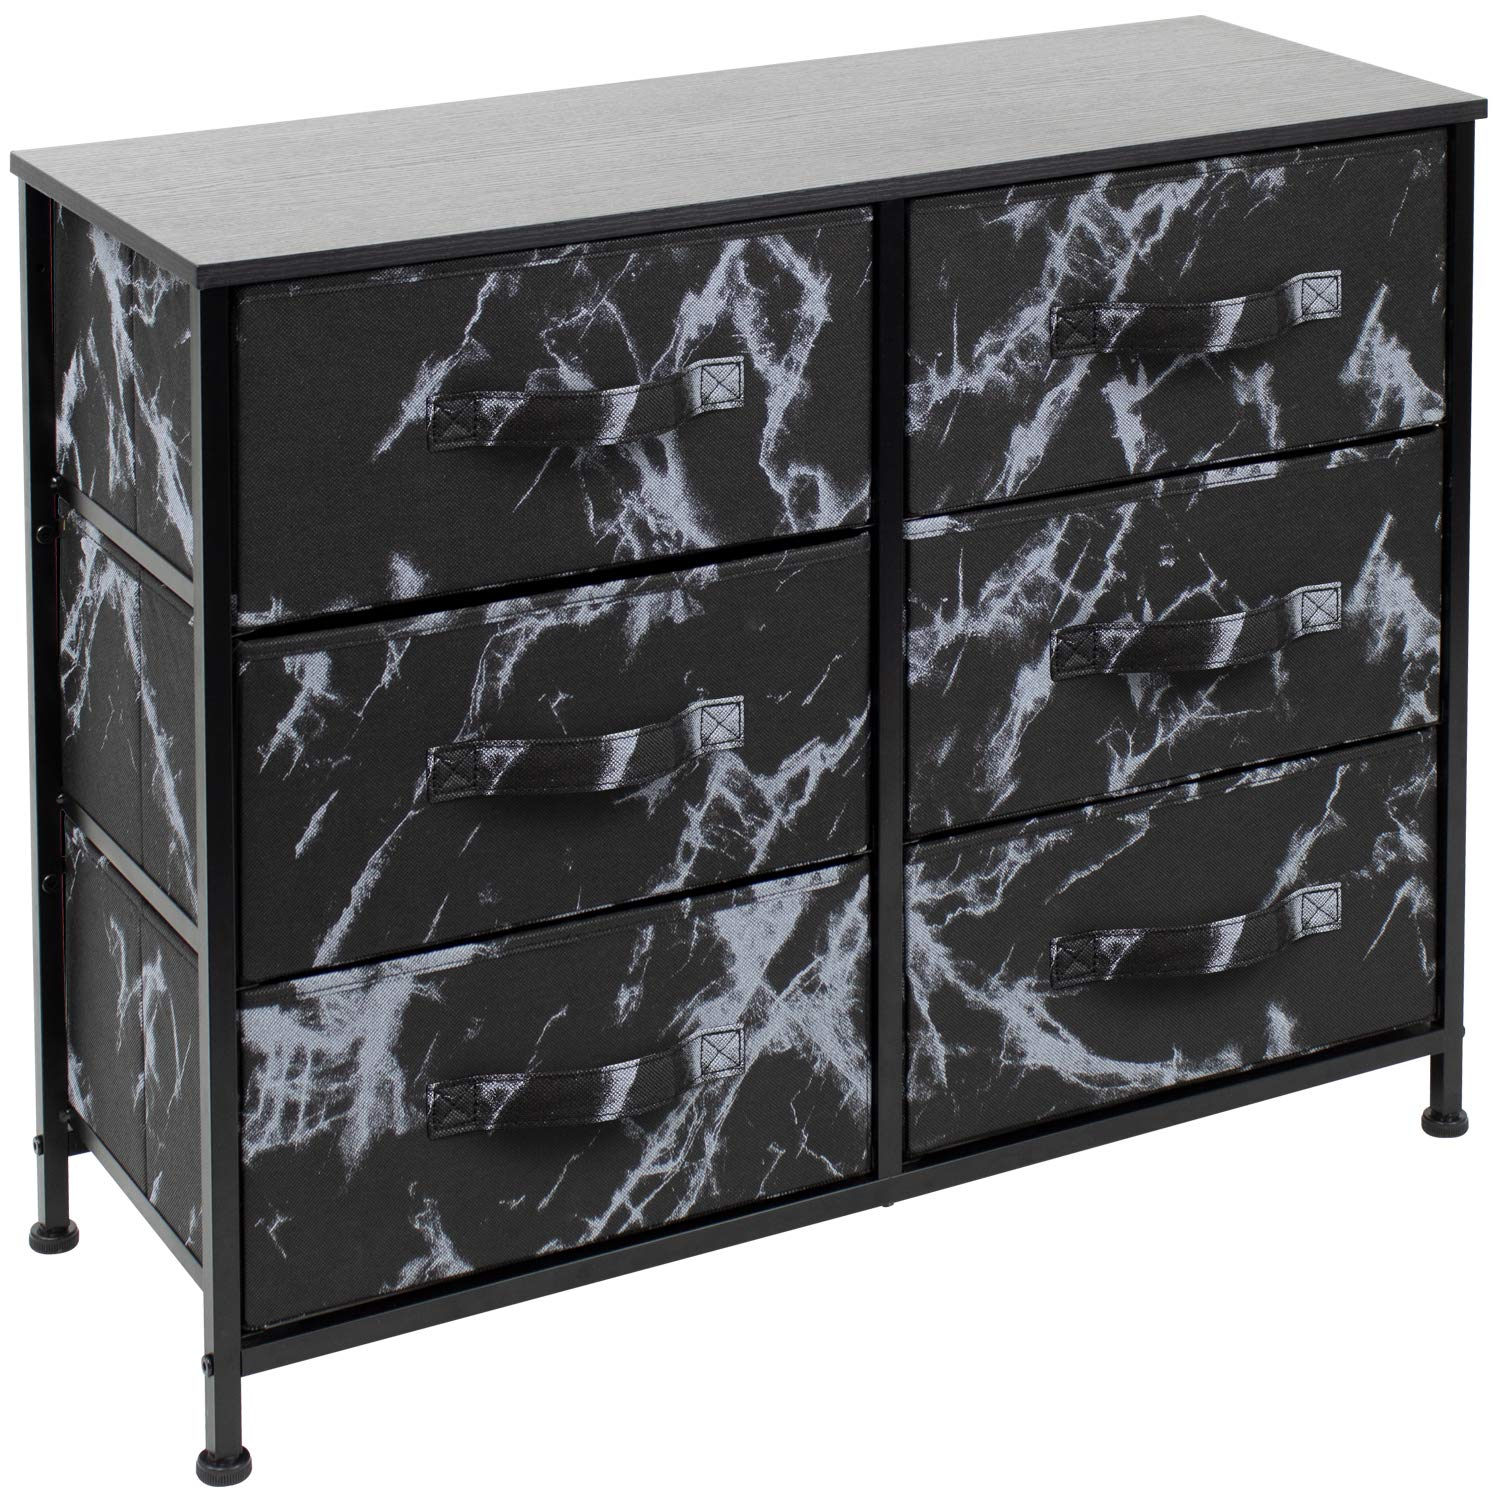 Sorbus Dresser with 6 Drawers - Furniture Storage Chest Tower Unit for Bedroom, Hallway, Closet, Office Organization - Steel Frame, Wood Top, Easy Pull Fabric Bins (Marble Black – Black Frame)